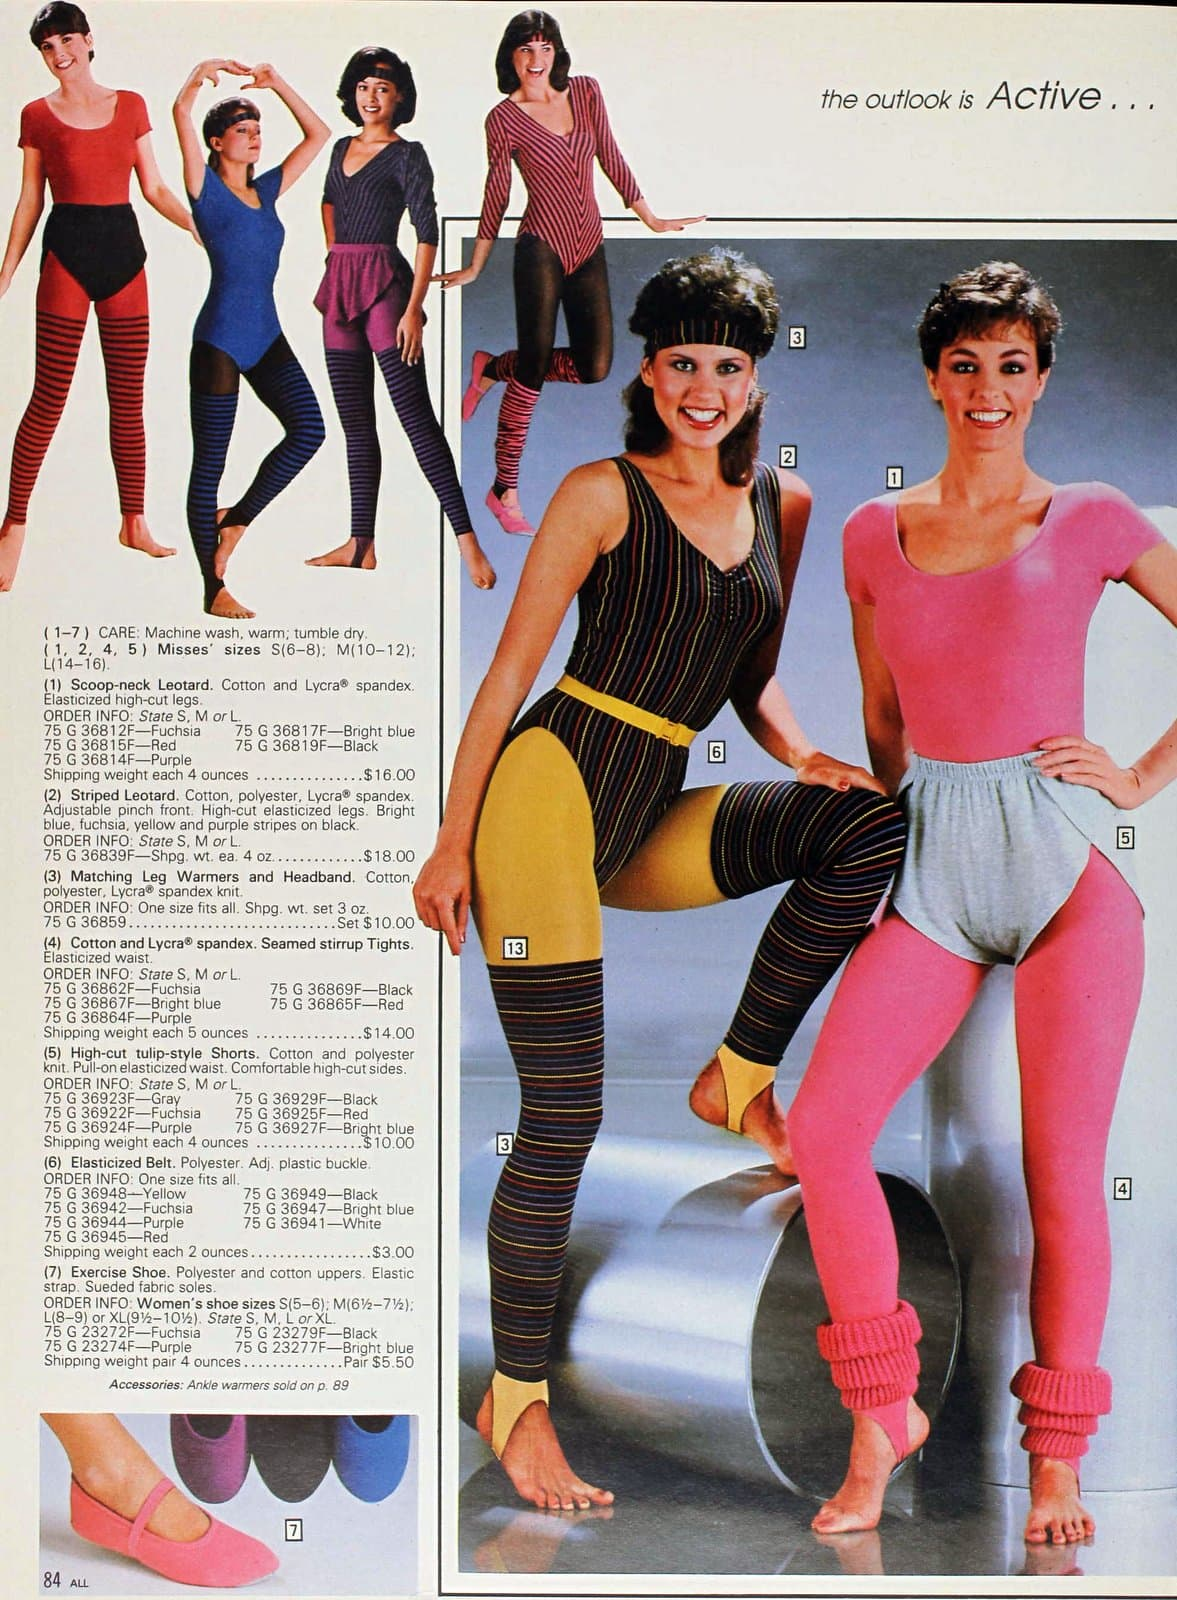 Happy women in workout fashions from the 1980s